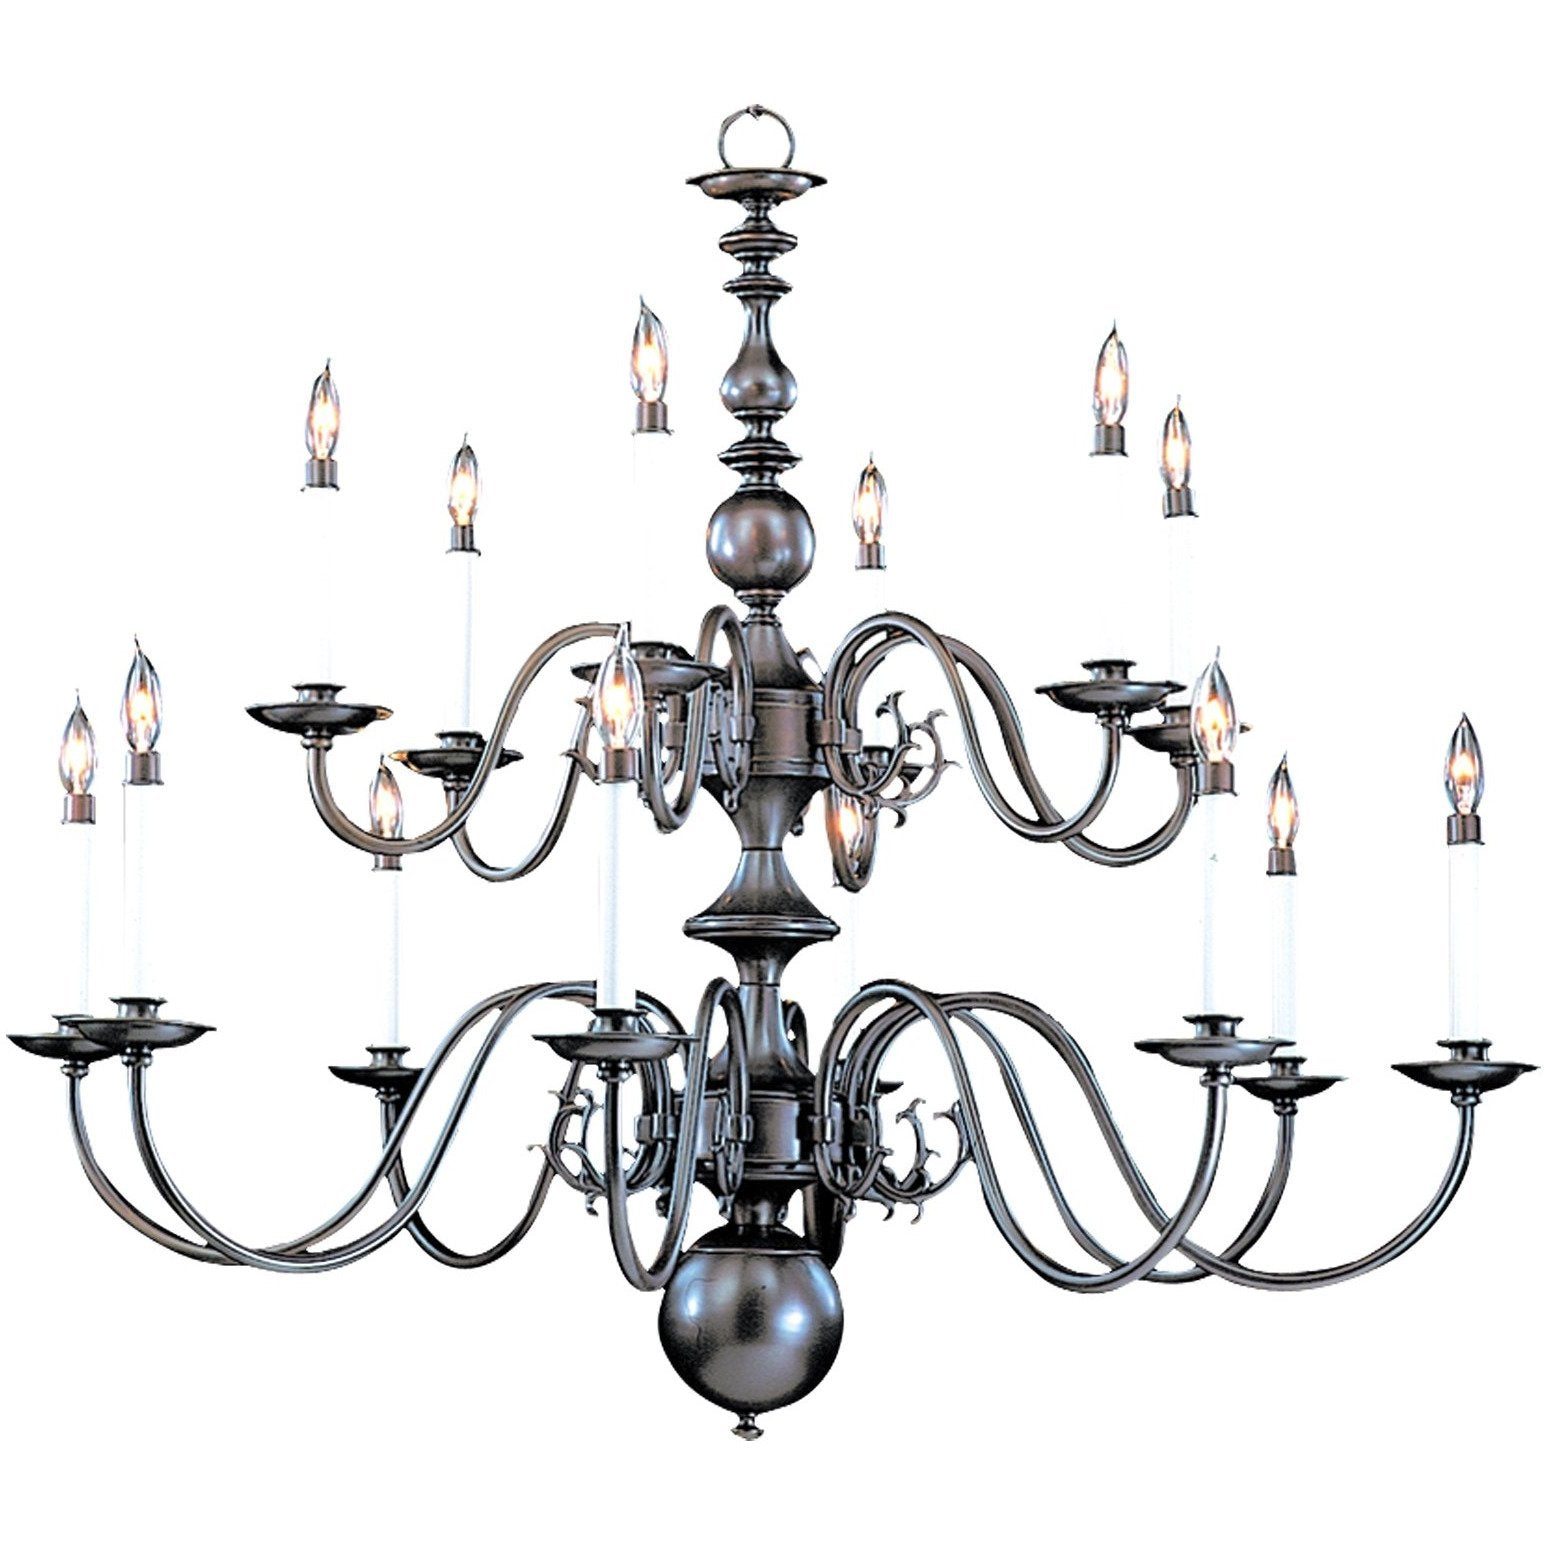 Framburg Foyer Chandeliers Mahogany Bronze 14-Light Mahogany Bronze Jamestown Foyer Chandelier by Framburg 9135